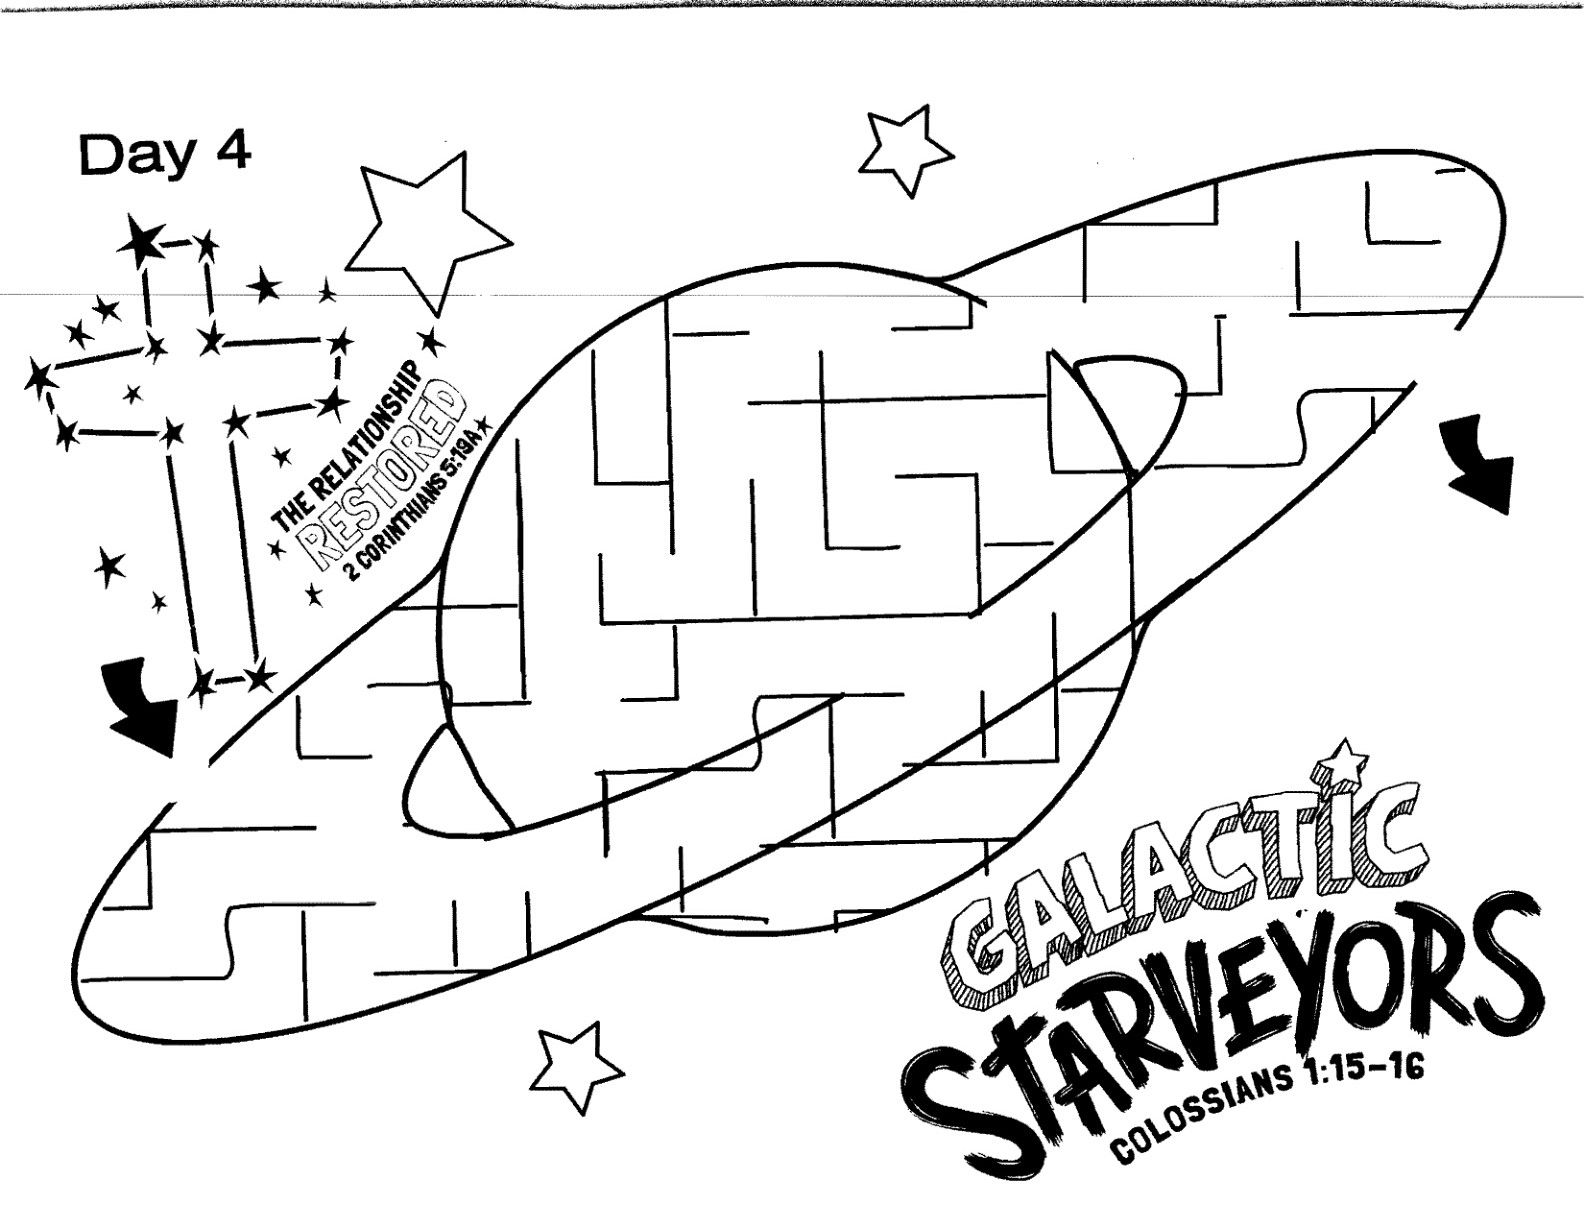 Galactic Starveyors Coloring Sheet Vbs 2017 Day 4 Easy Maze